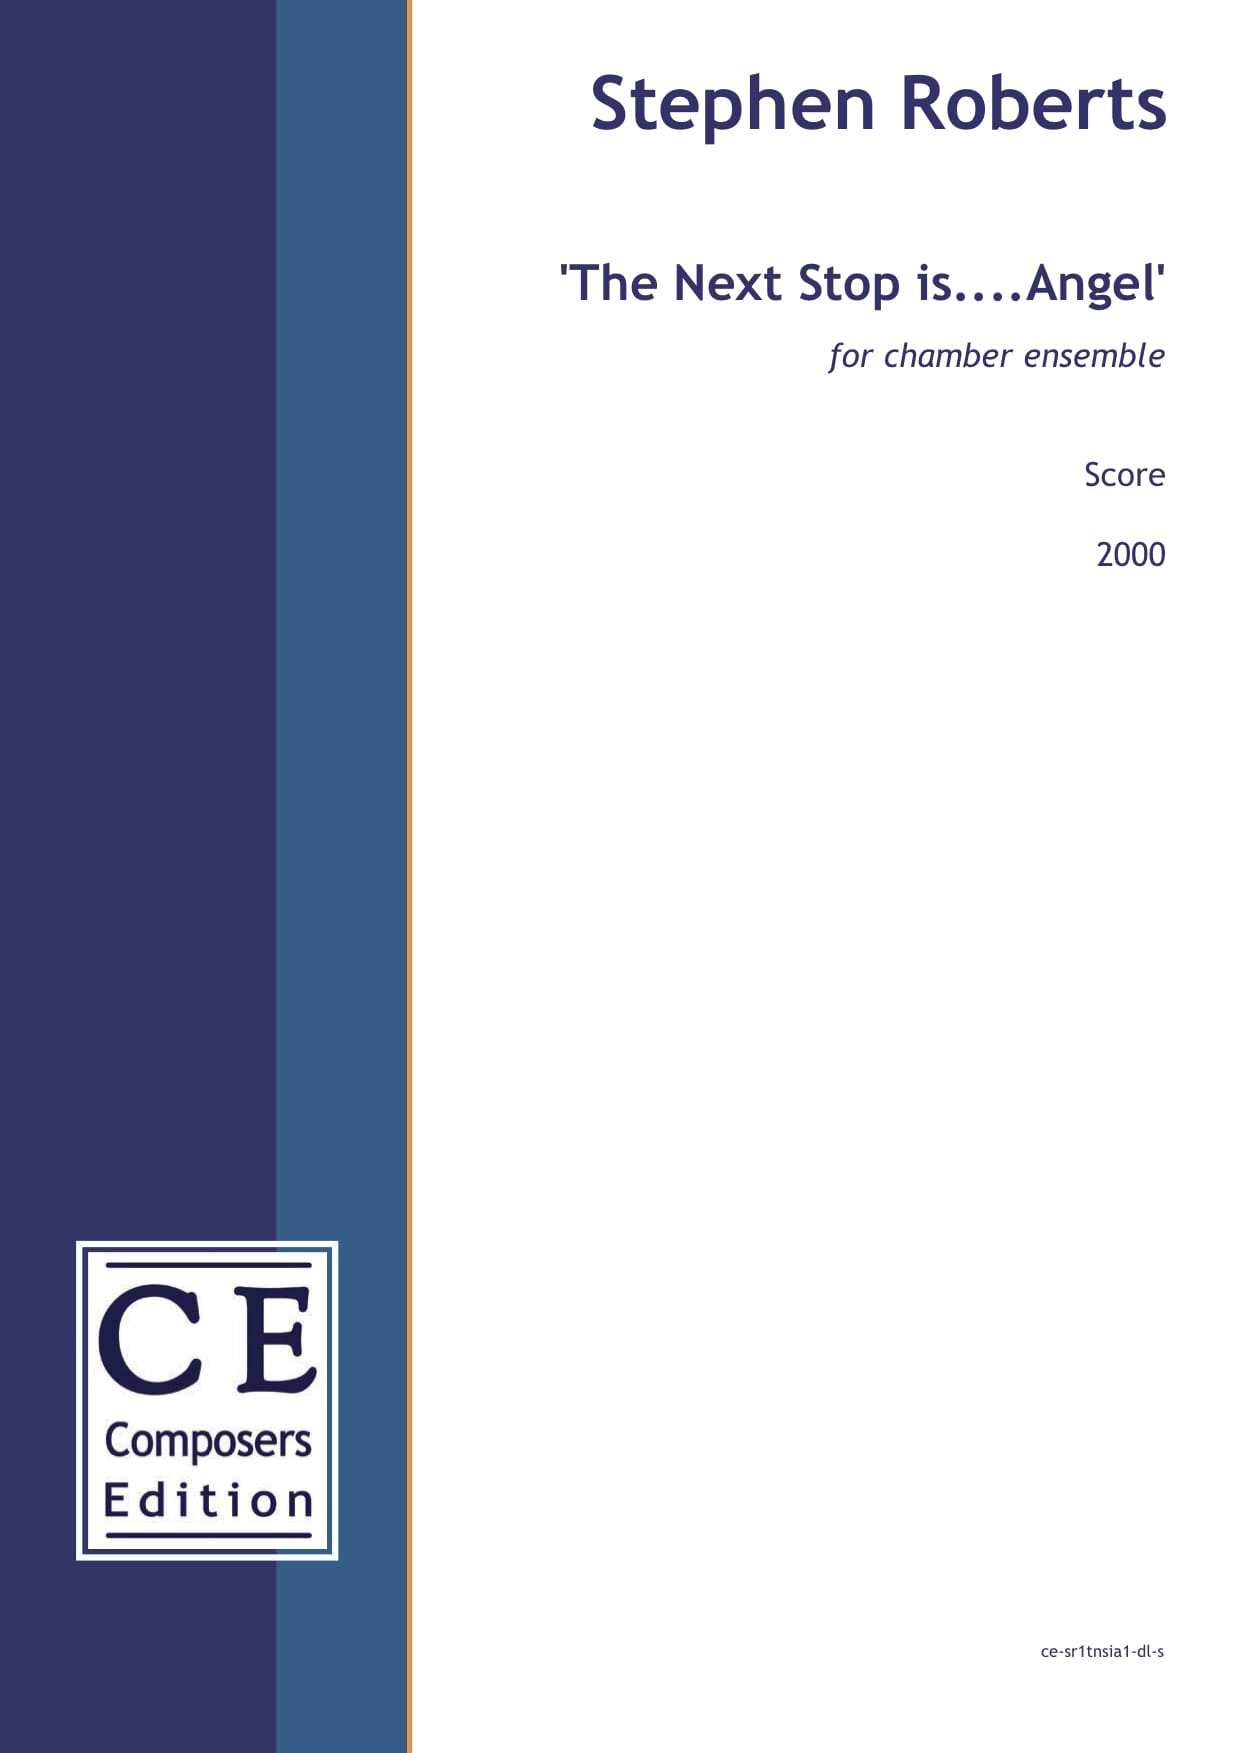 Stephen Roberts: 'The Next Stop is....Angel' for chamber ensemble